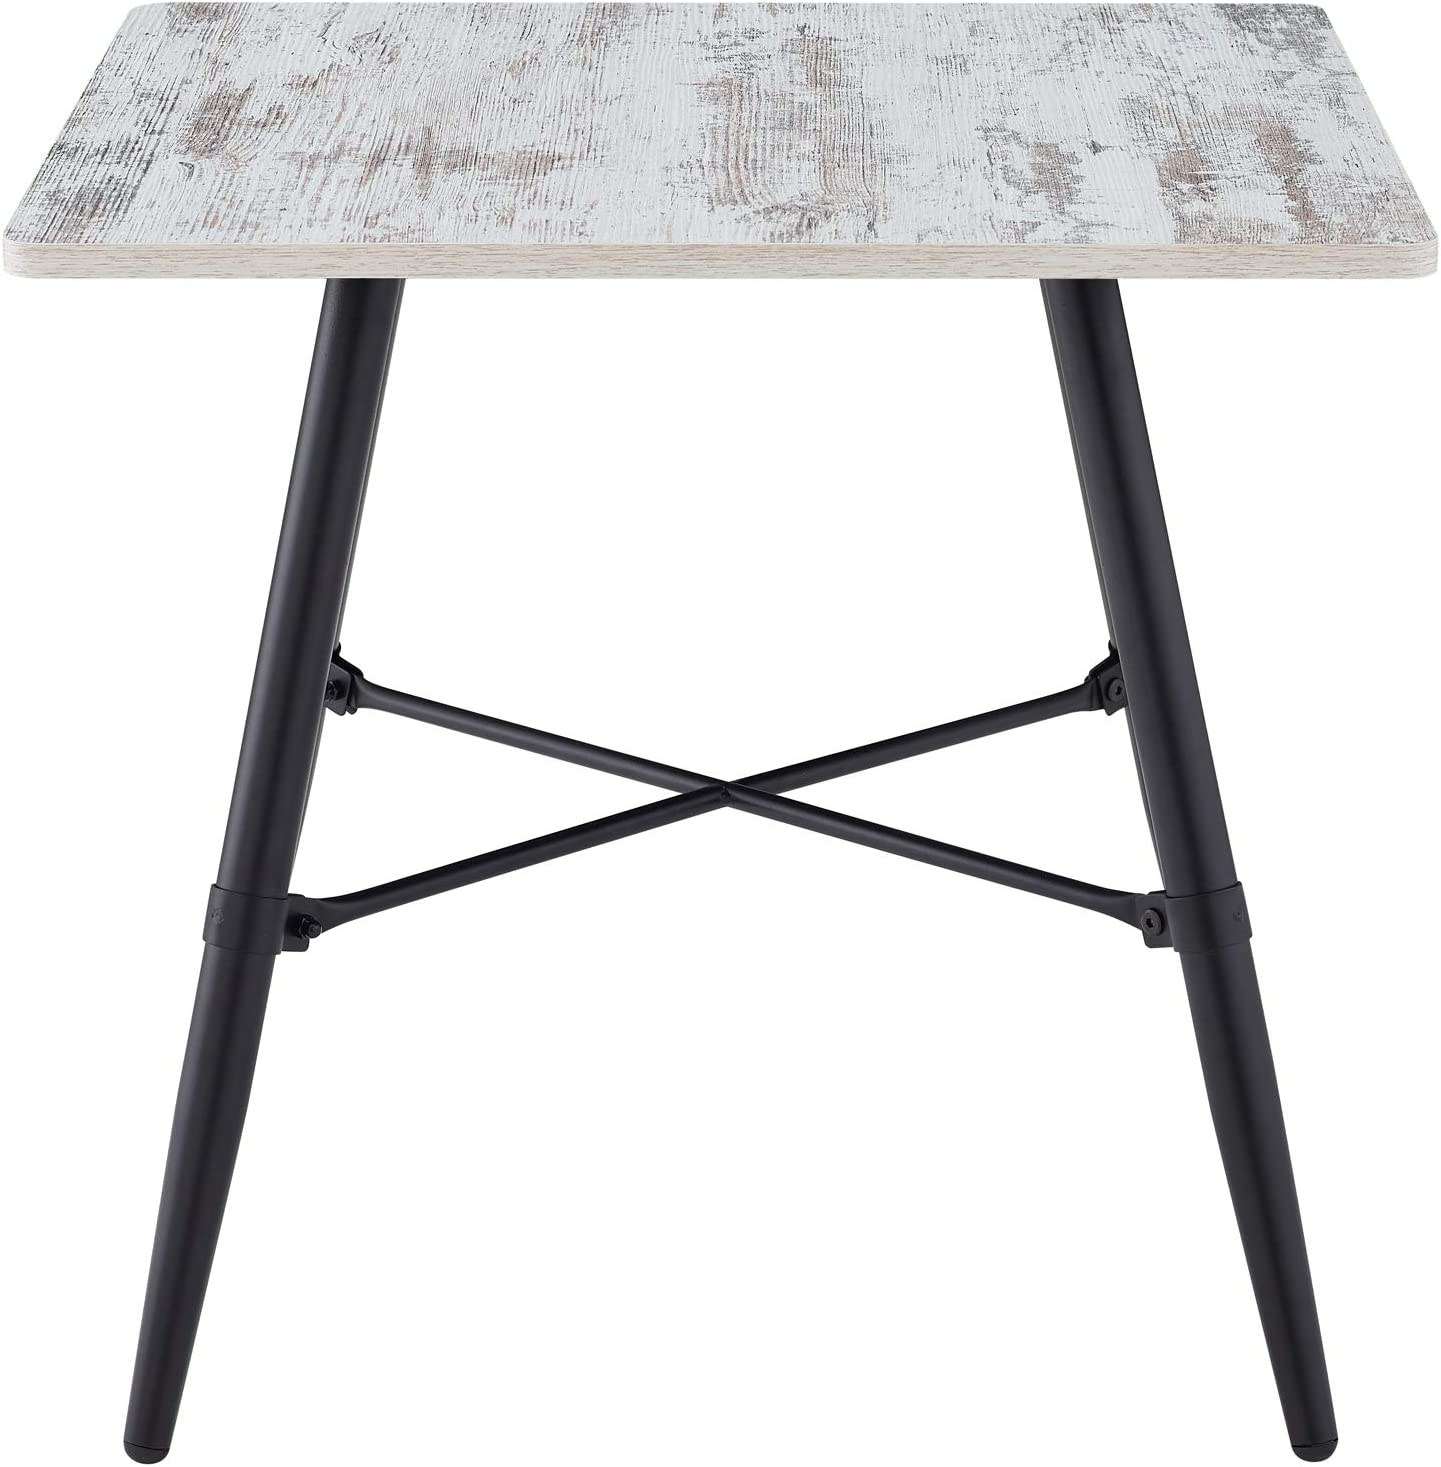 Classic Brands A01134-1352 Cameron End Table Without Tray-Distressed White